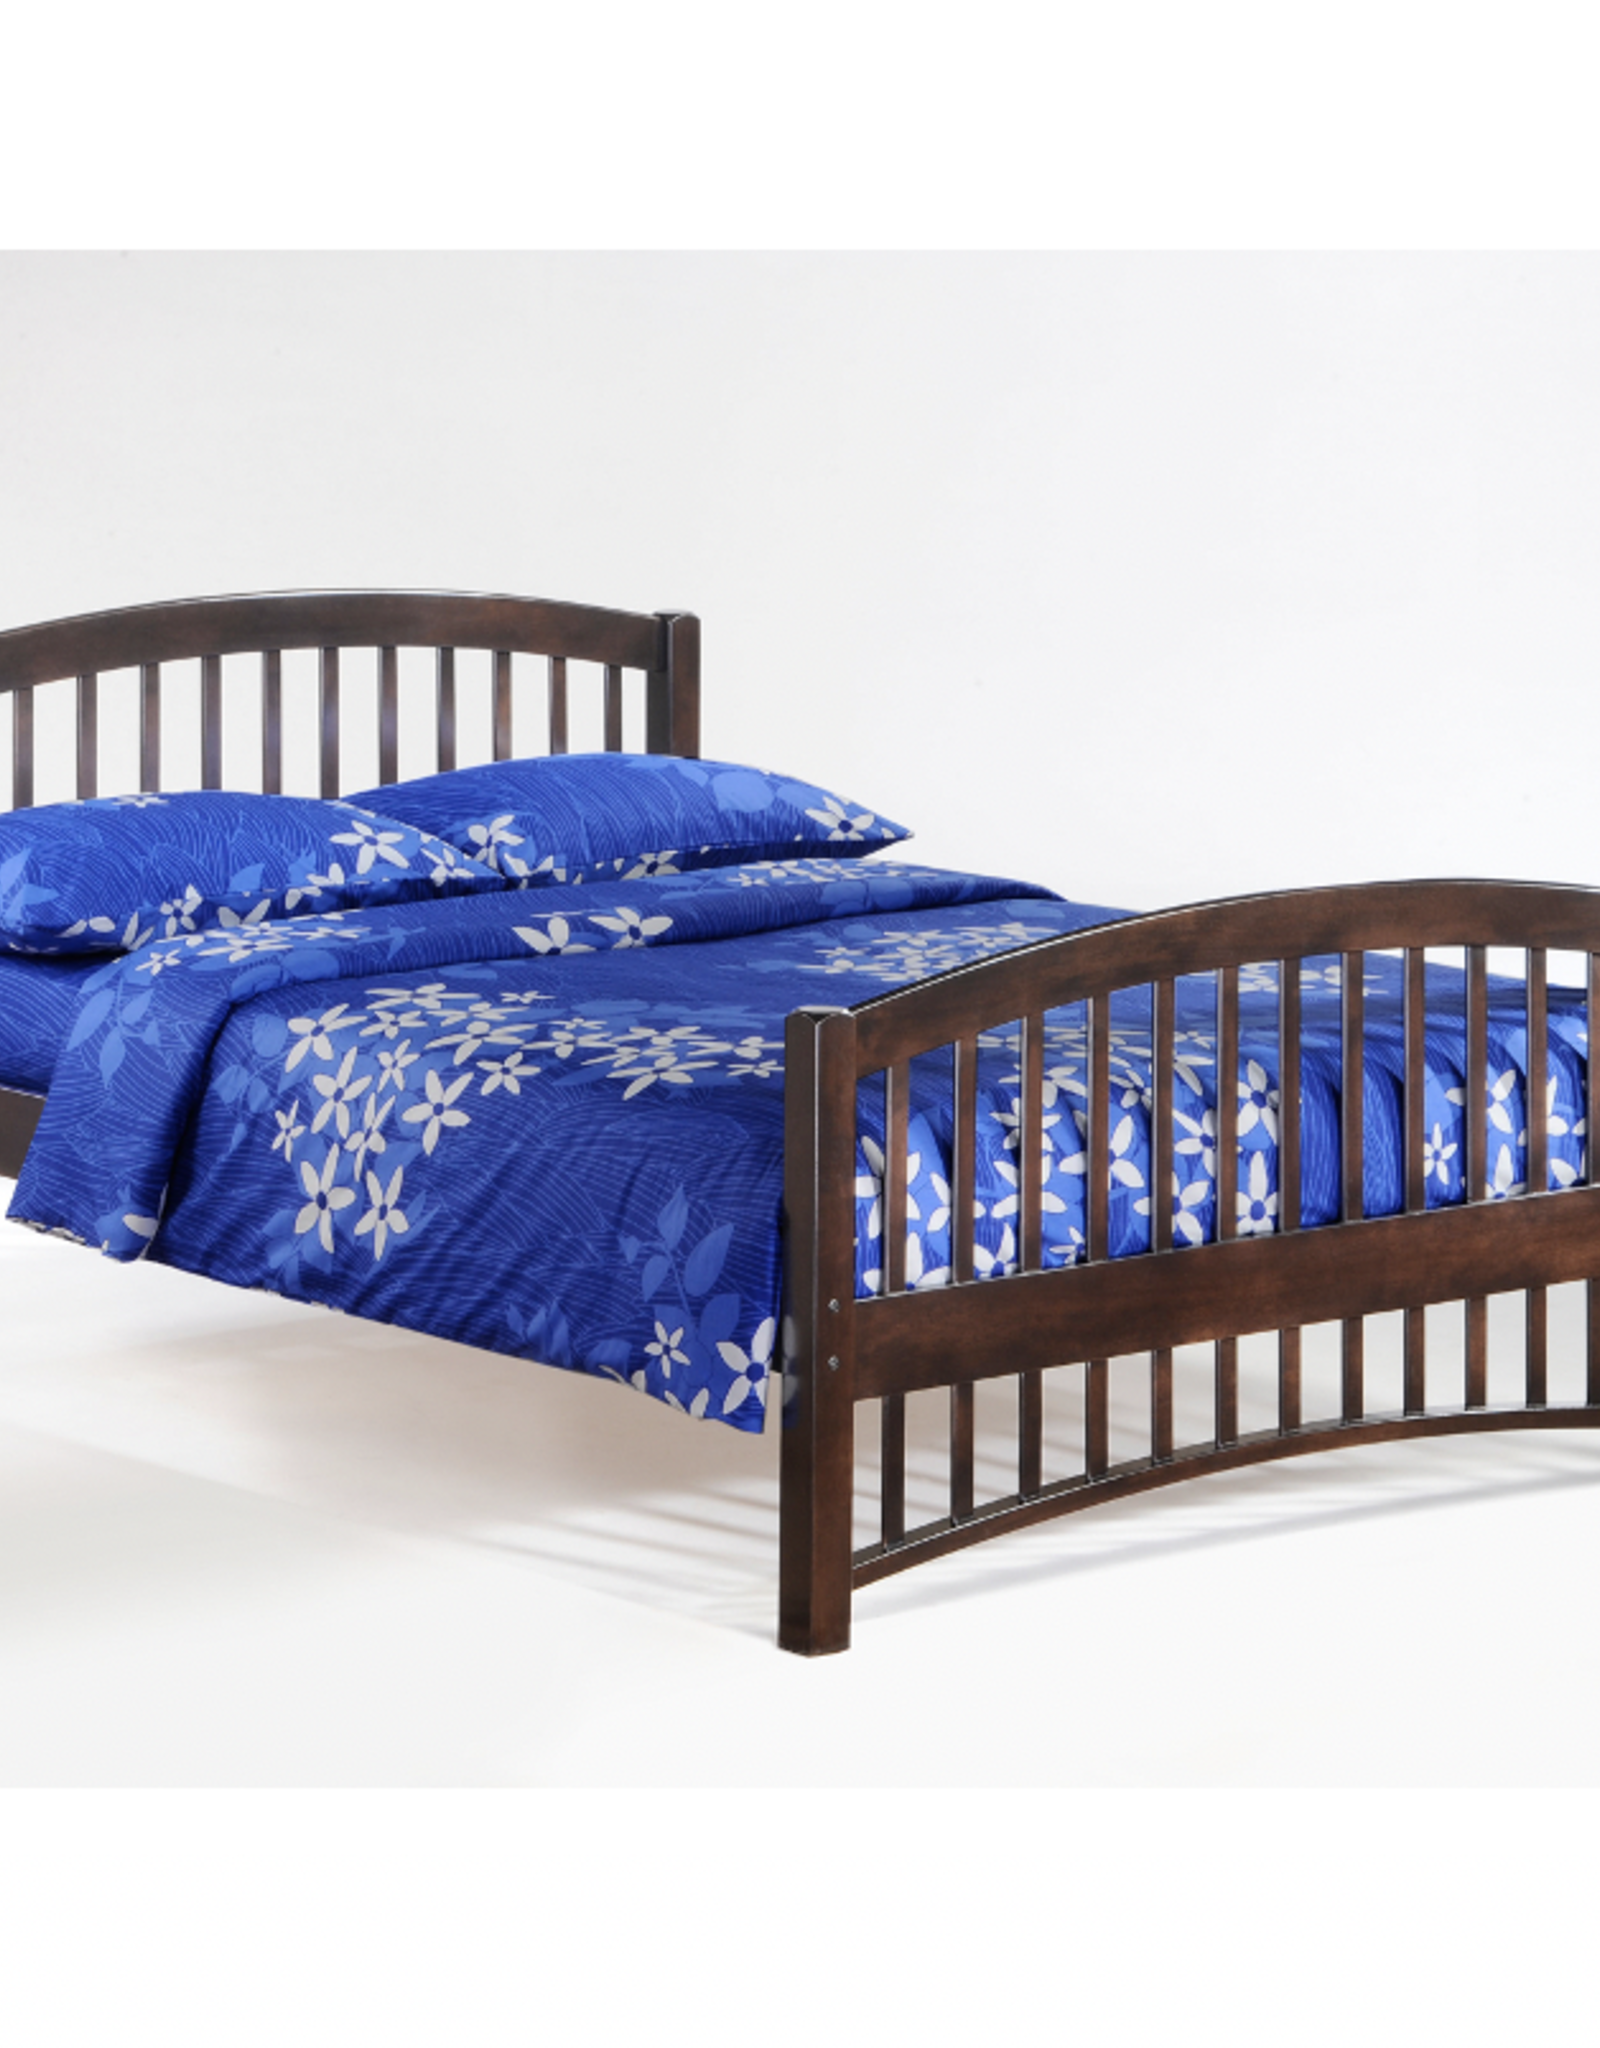 Molasses Platform Bed - Comes in Four Colors